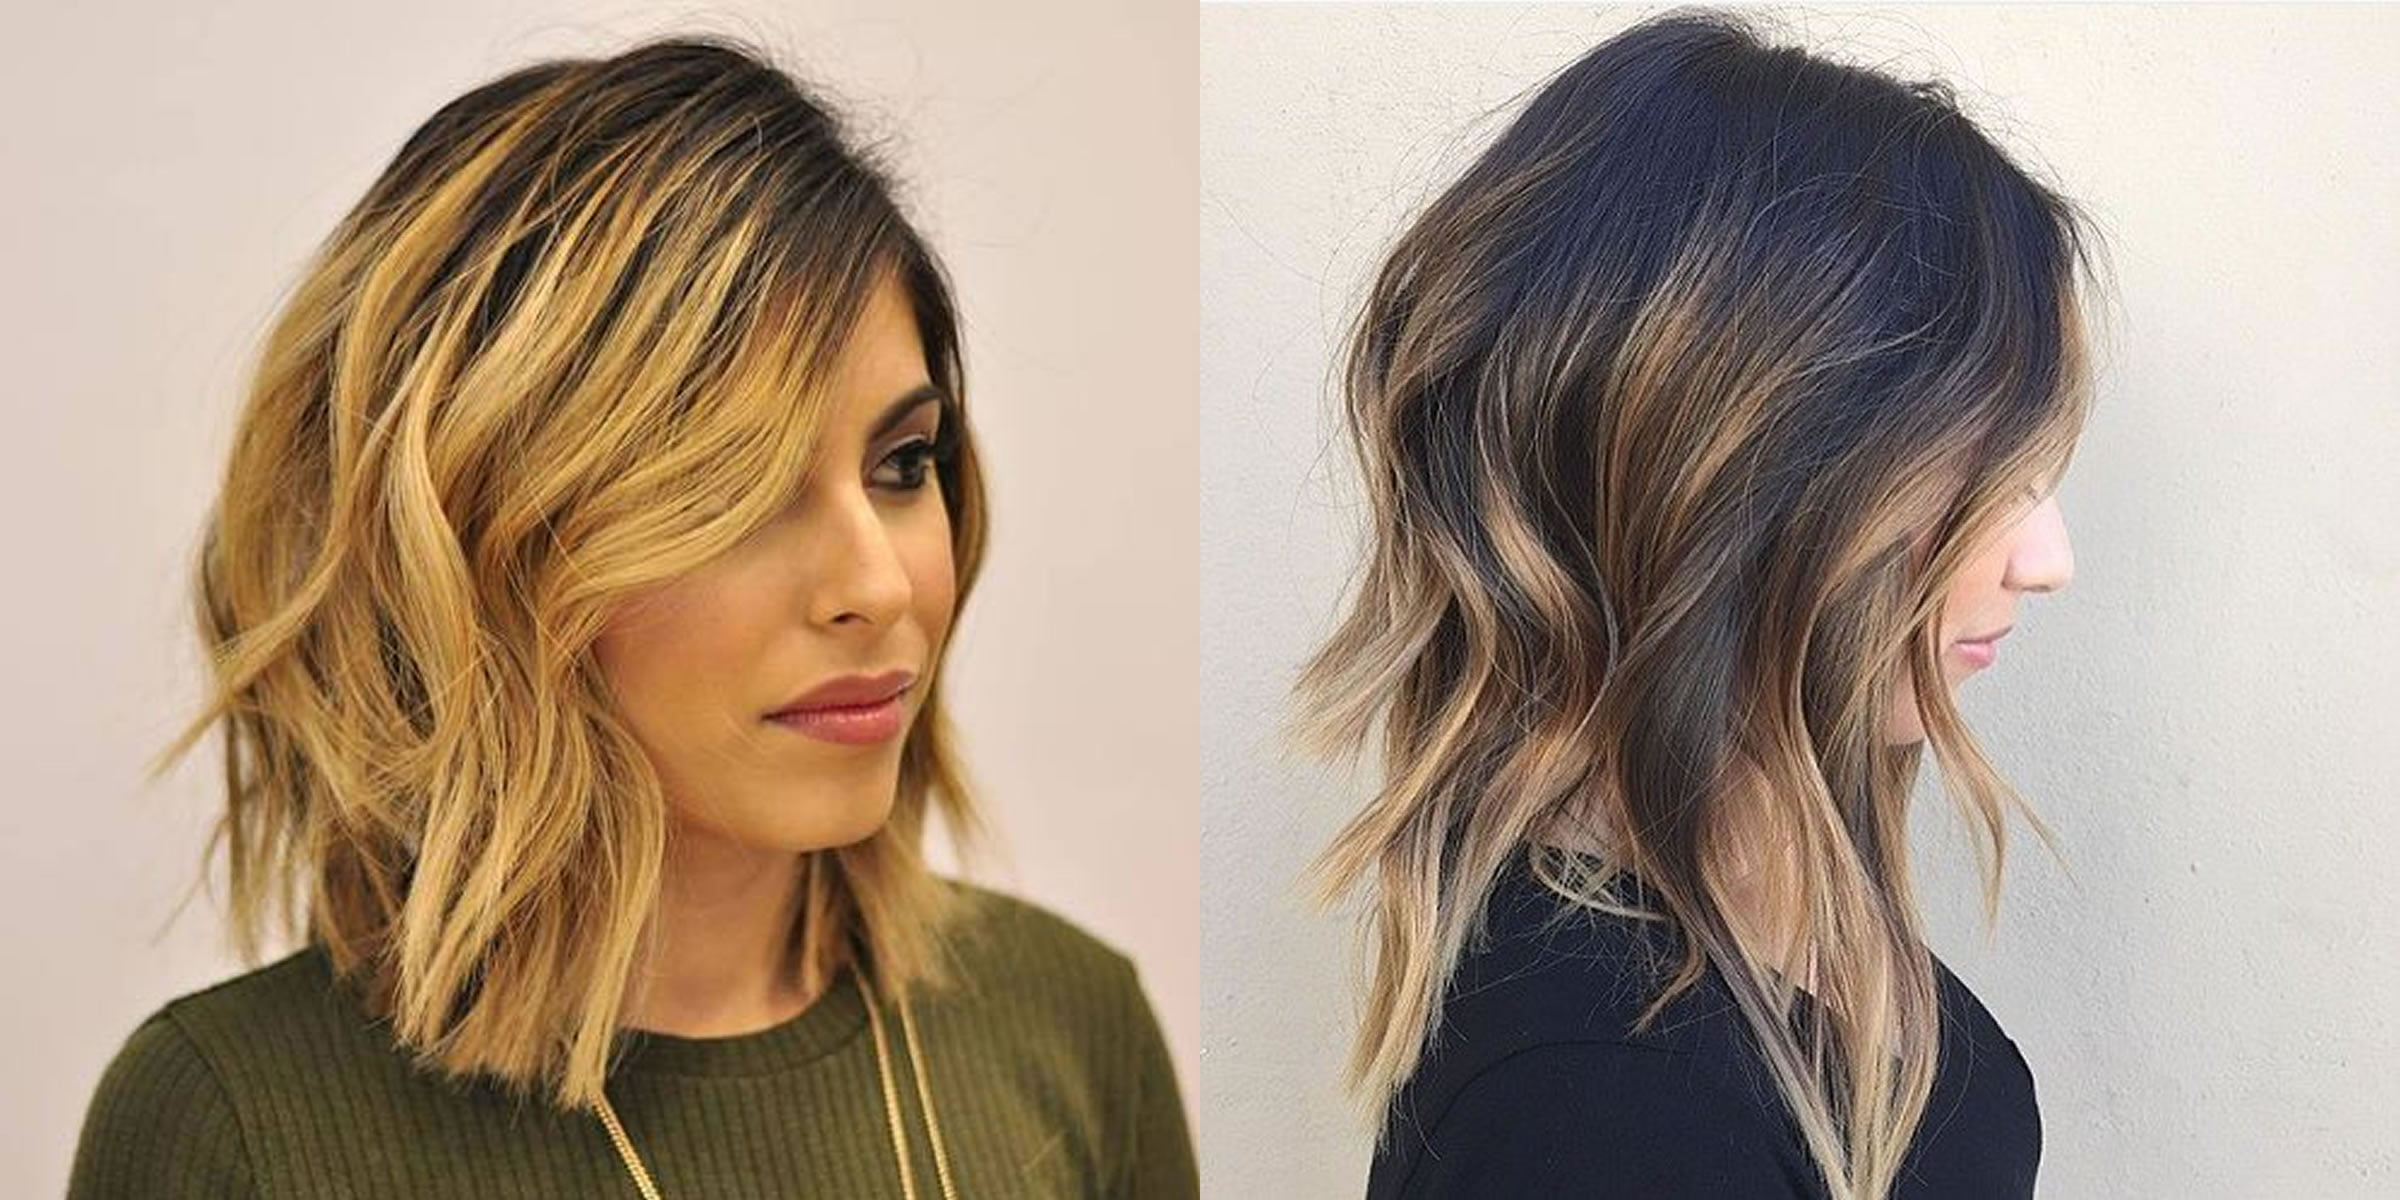 60 Best Long Bob Hairstyles And Hair Colors Balayageombre For Women